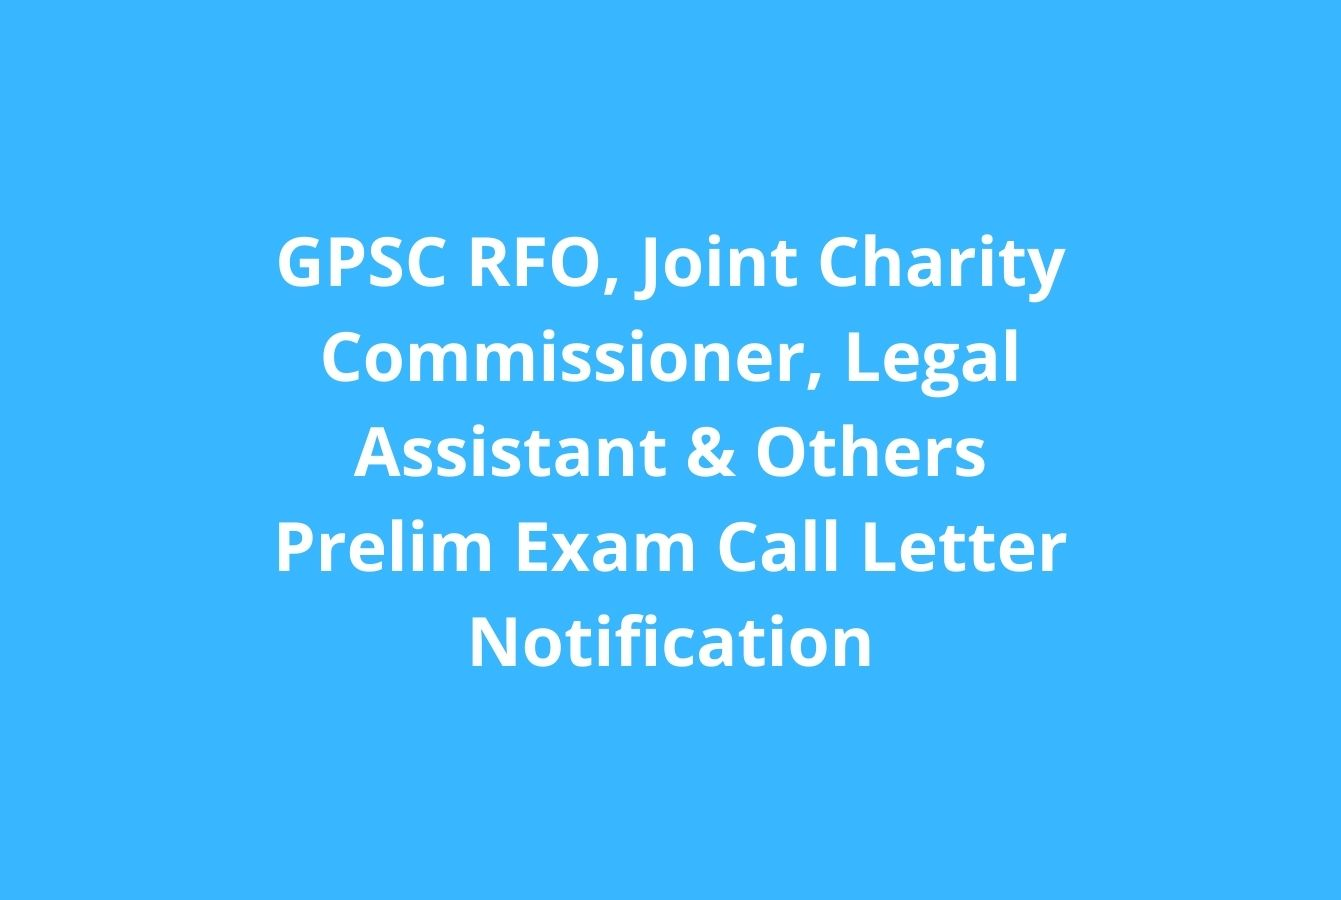 GPSC RFO, Joint Charity Commissioner, Legal Assistant & Others Prelim Exam Call Letter Notification